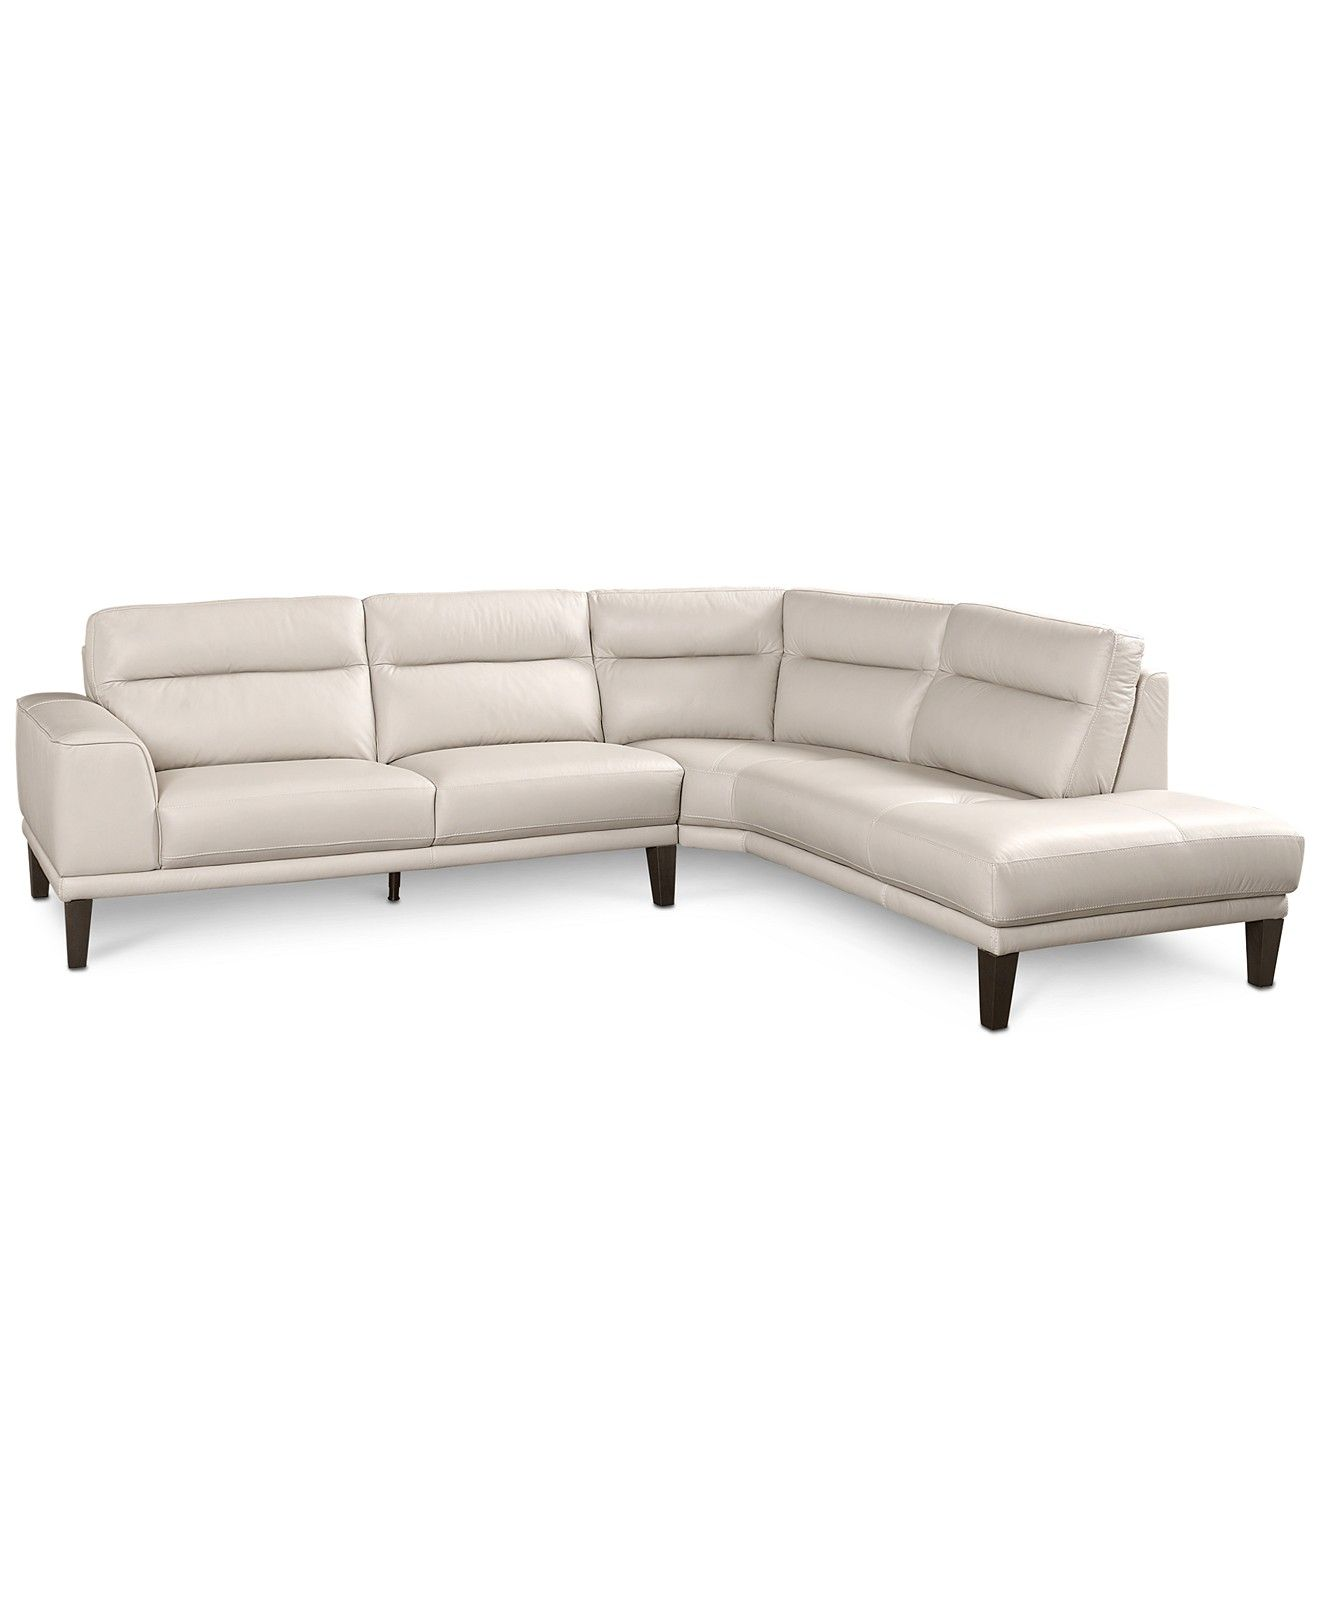 Dayle Leather 2 Pc Sectional Sofa